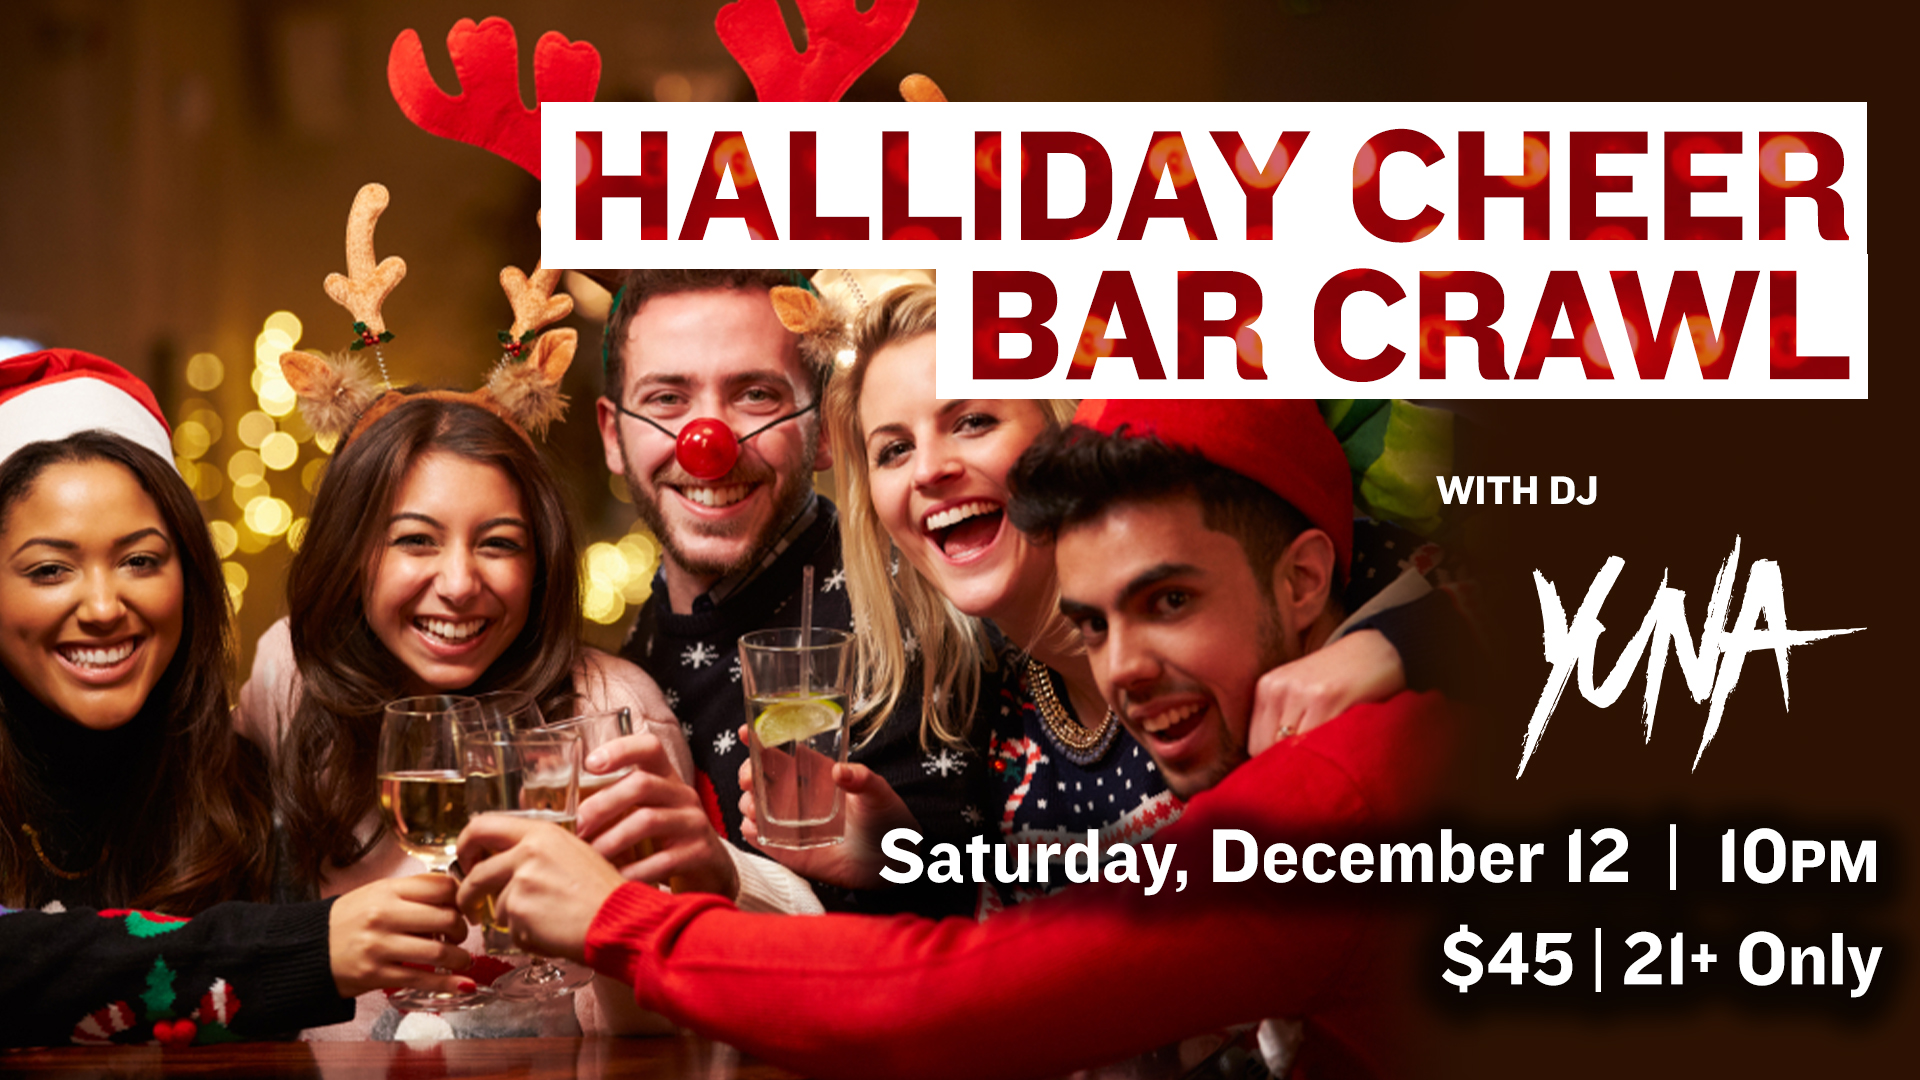 Promo image of Halliday Cheer Bar Crawl